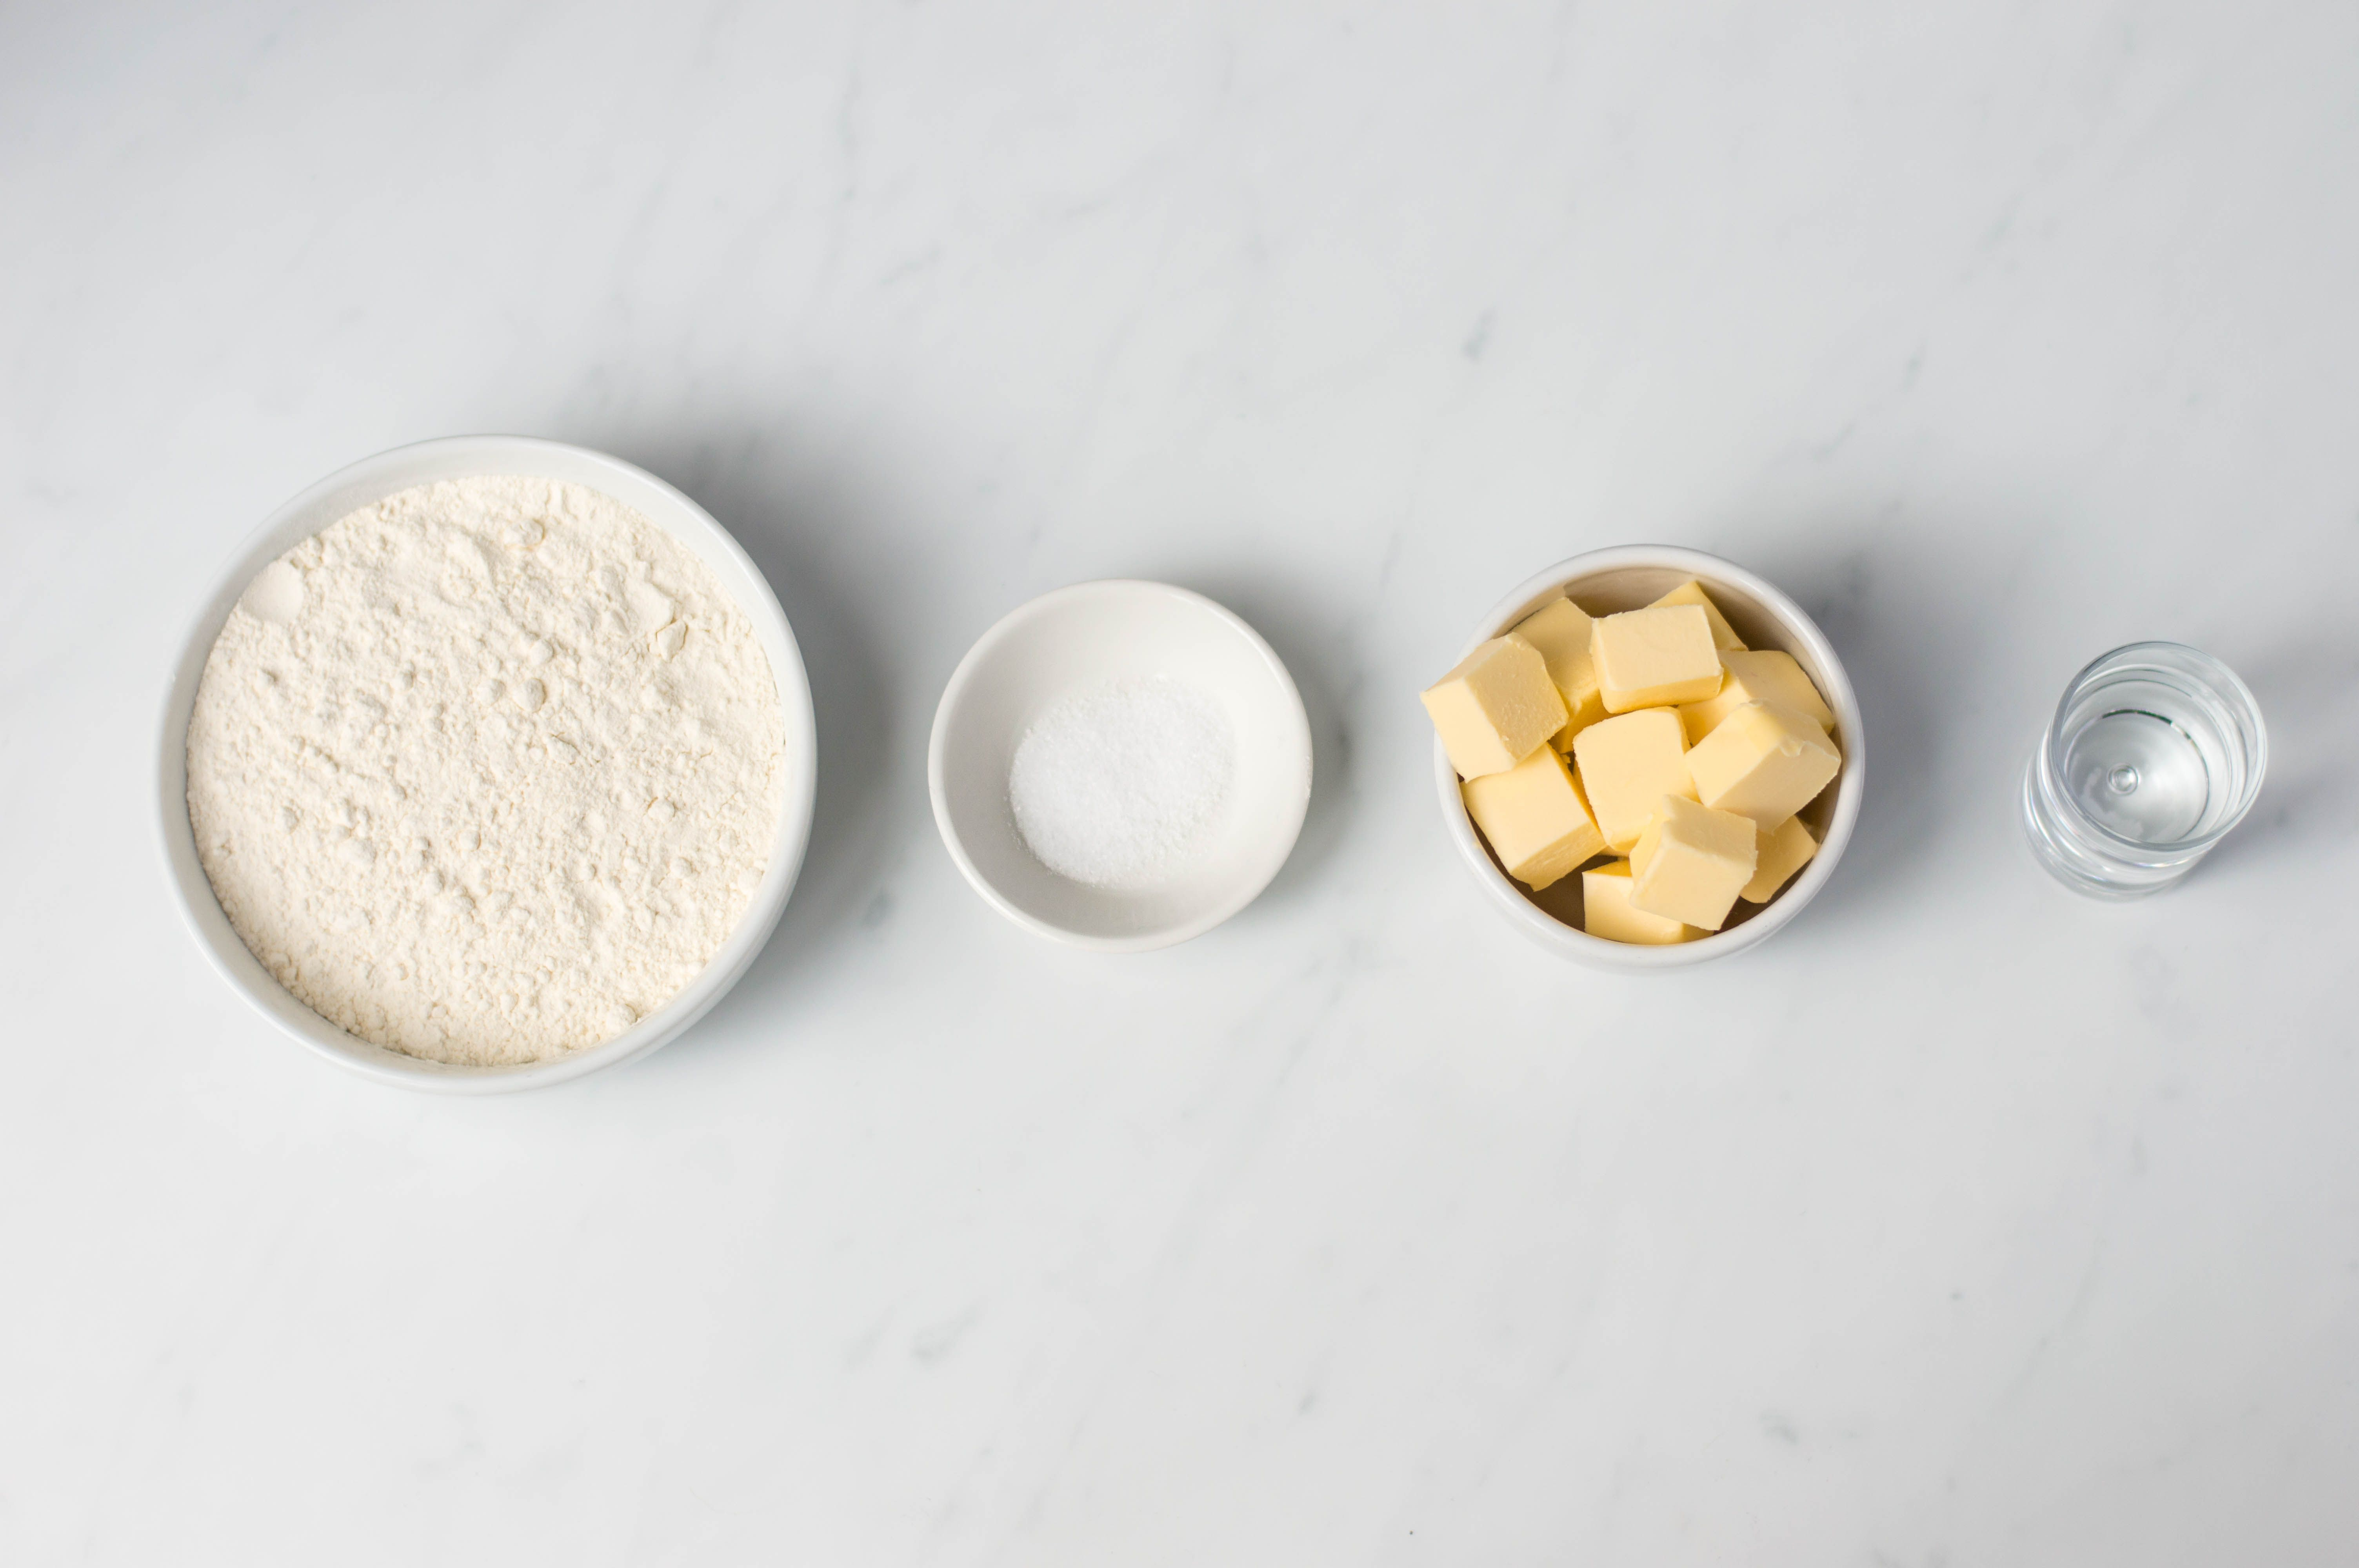 Ingredients for Bakewell Tart pastry